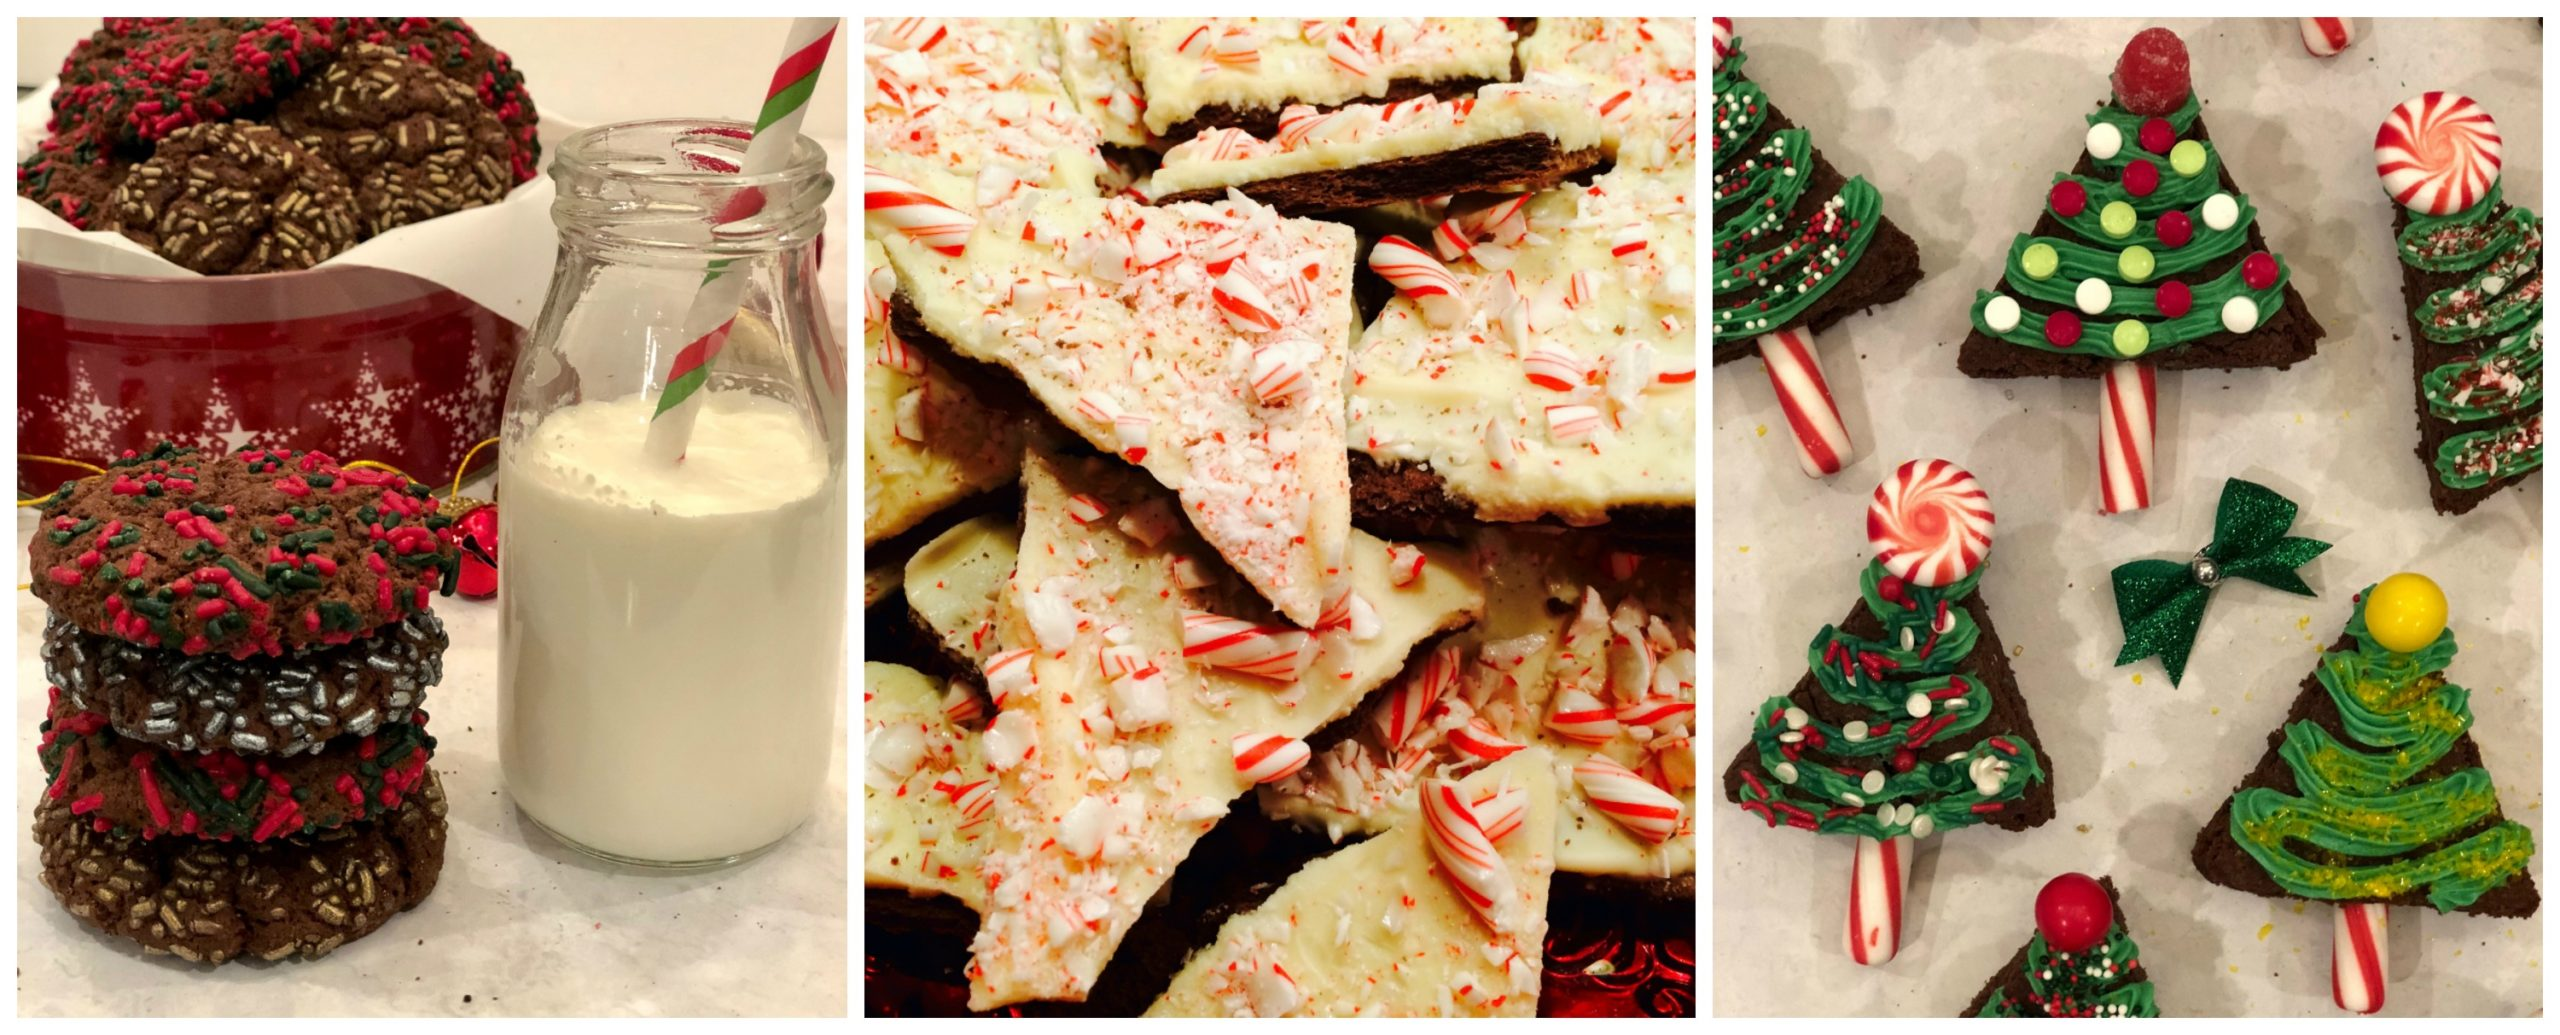 Espresso chocolate Cookies, peppermint Bark and Christmas Tree Brownies